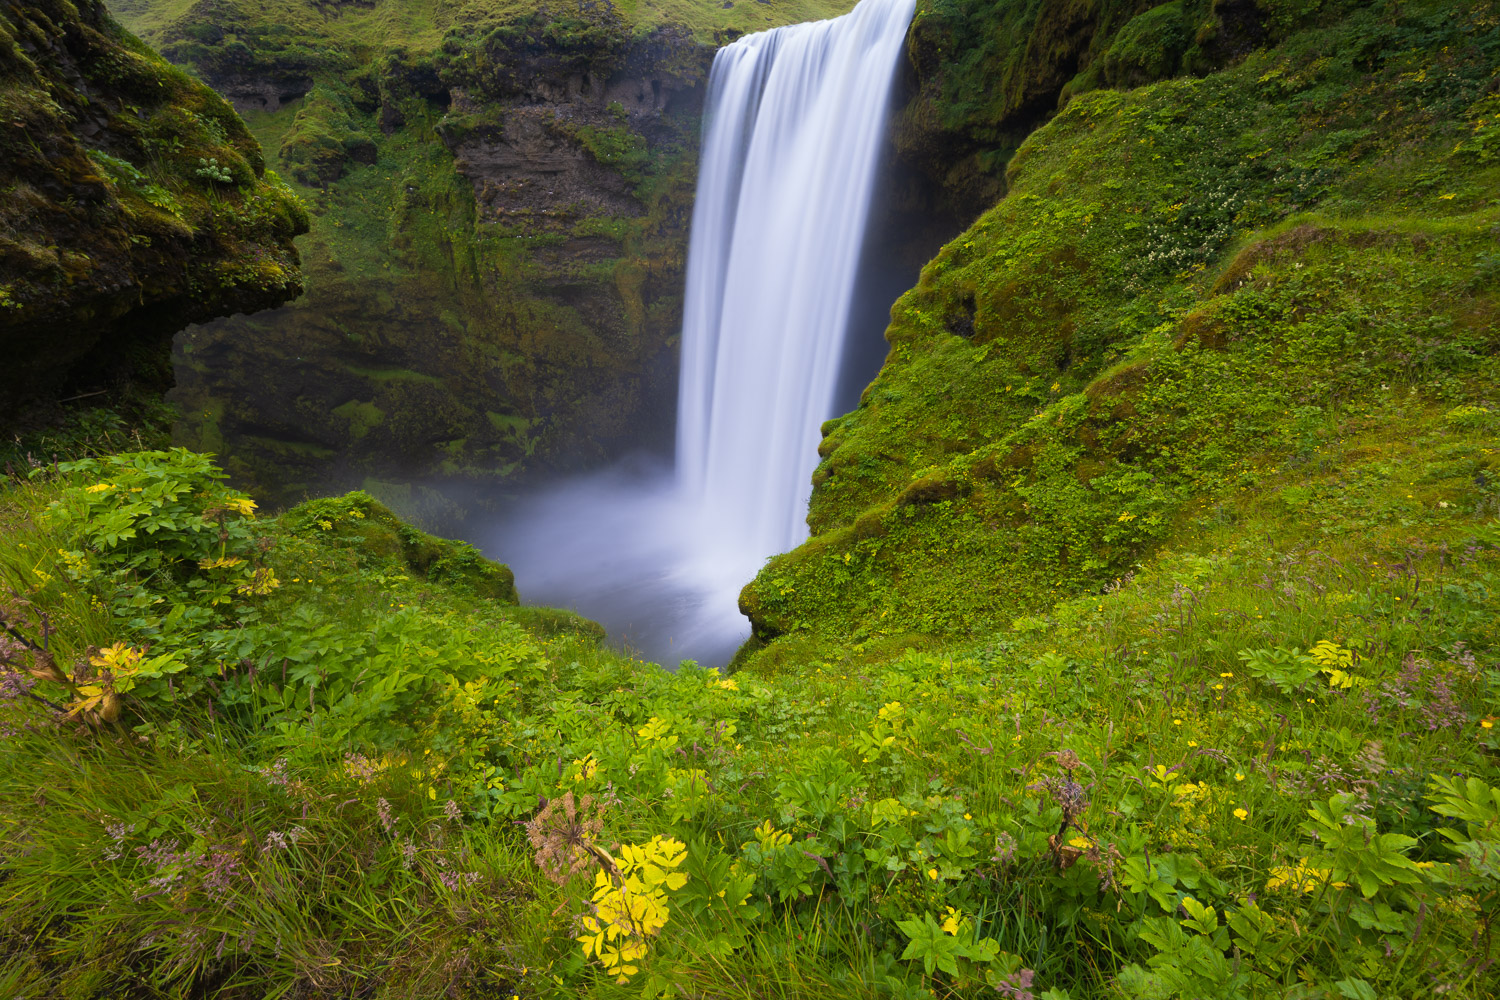 Skogafgoss waterfall in Southwest Iceland for sale as a limited edition fine art print.